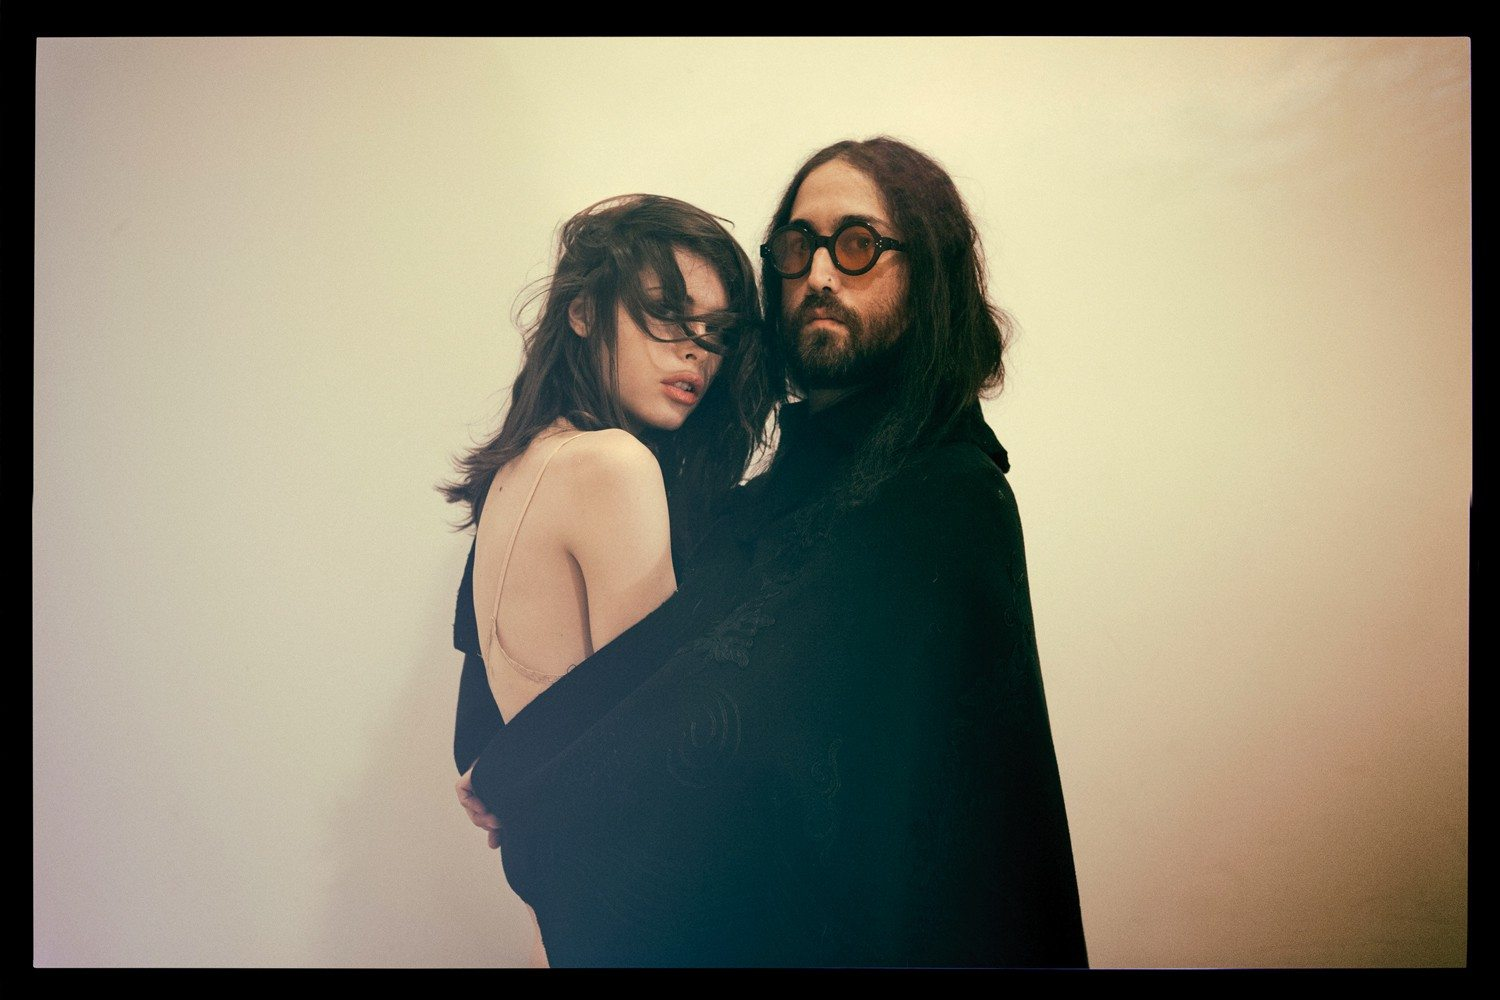 courtesy photoSean Lennon and Charlotte Kemp Muhl — who make up the duo The Ghost of a Saber Tooth Tiger — have released their second recording.